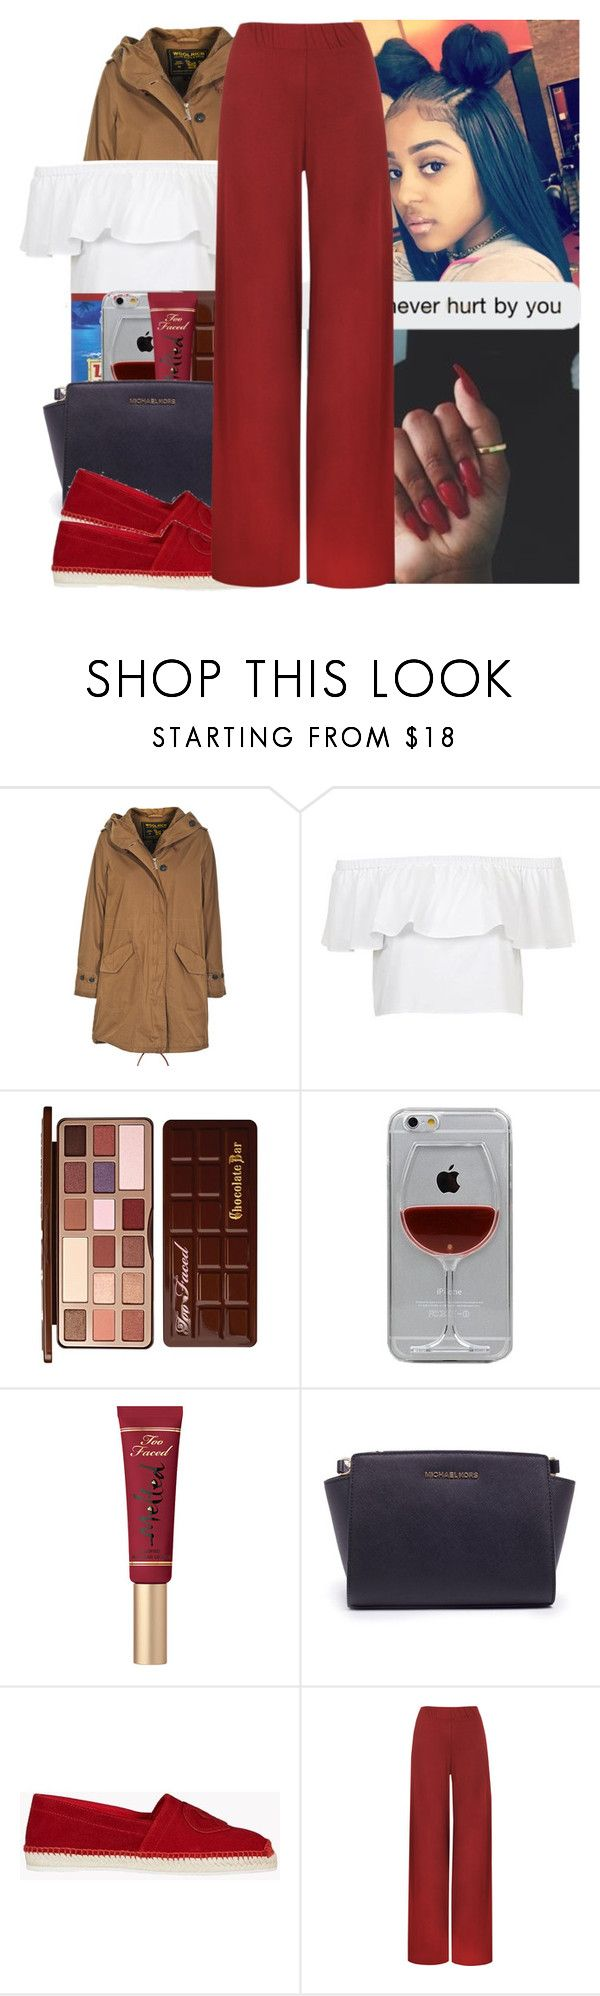 """📮"" by l-ondonbridge ❤ liked on Polyvore featuring Woolrich, Topshop, Too Faced Cosmetics, Reyes, Michael Kors, Dsquared2 and WearAll"